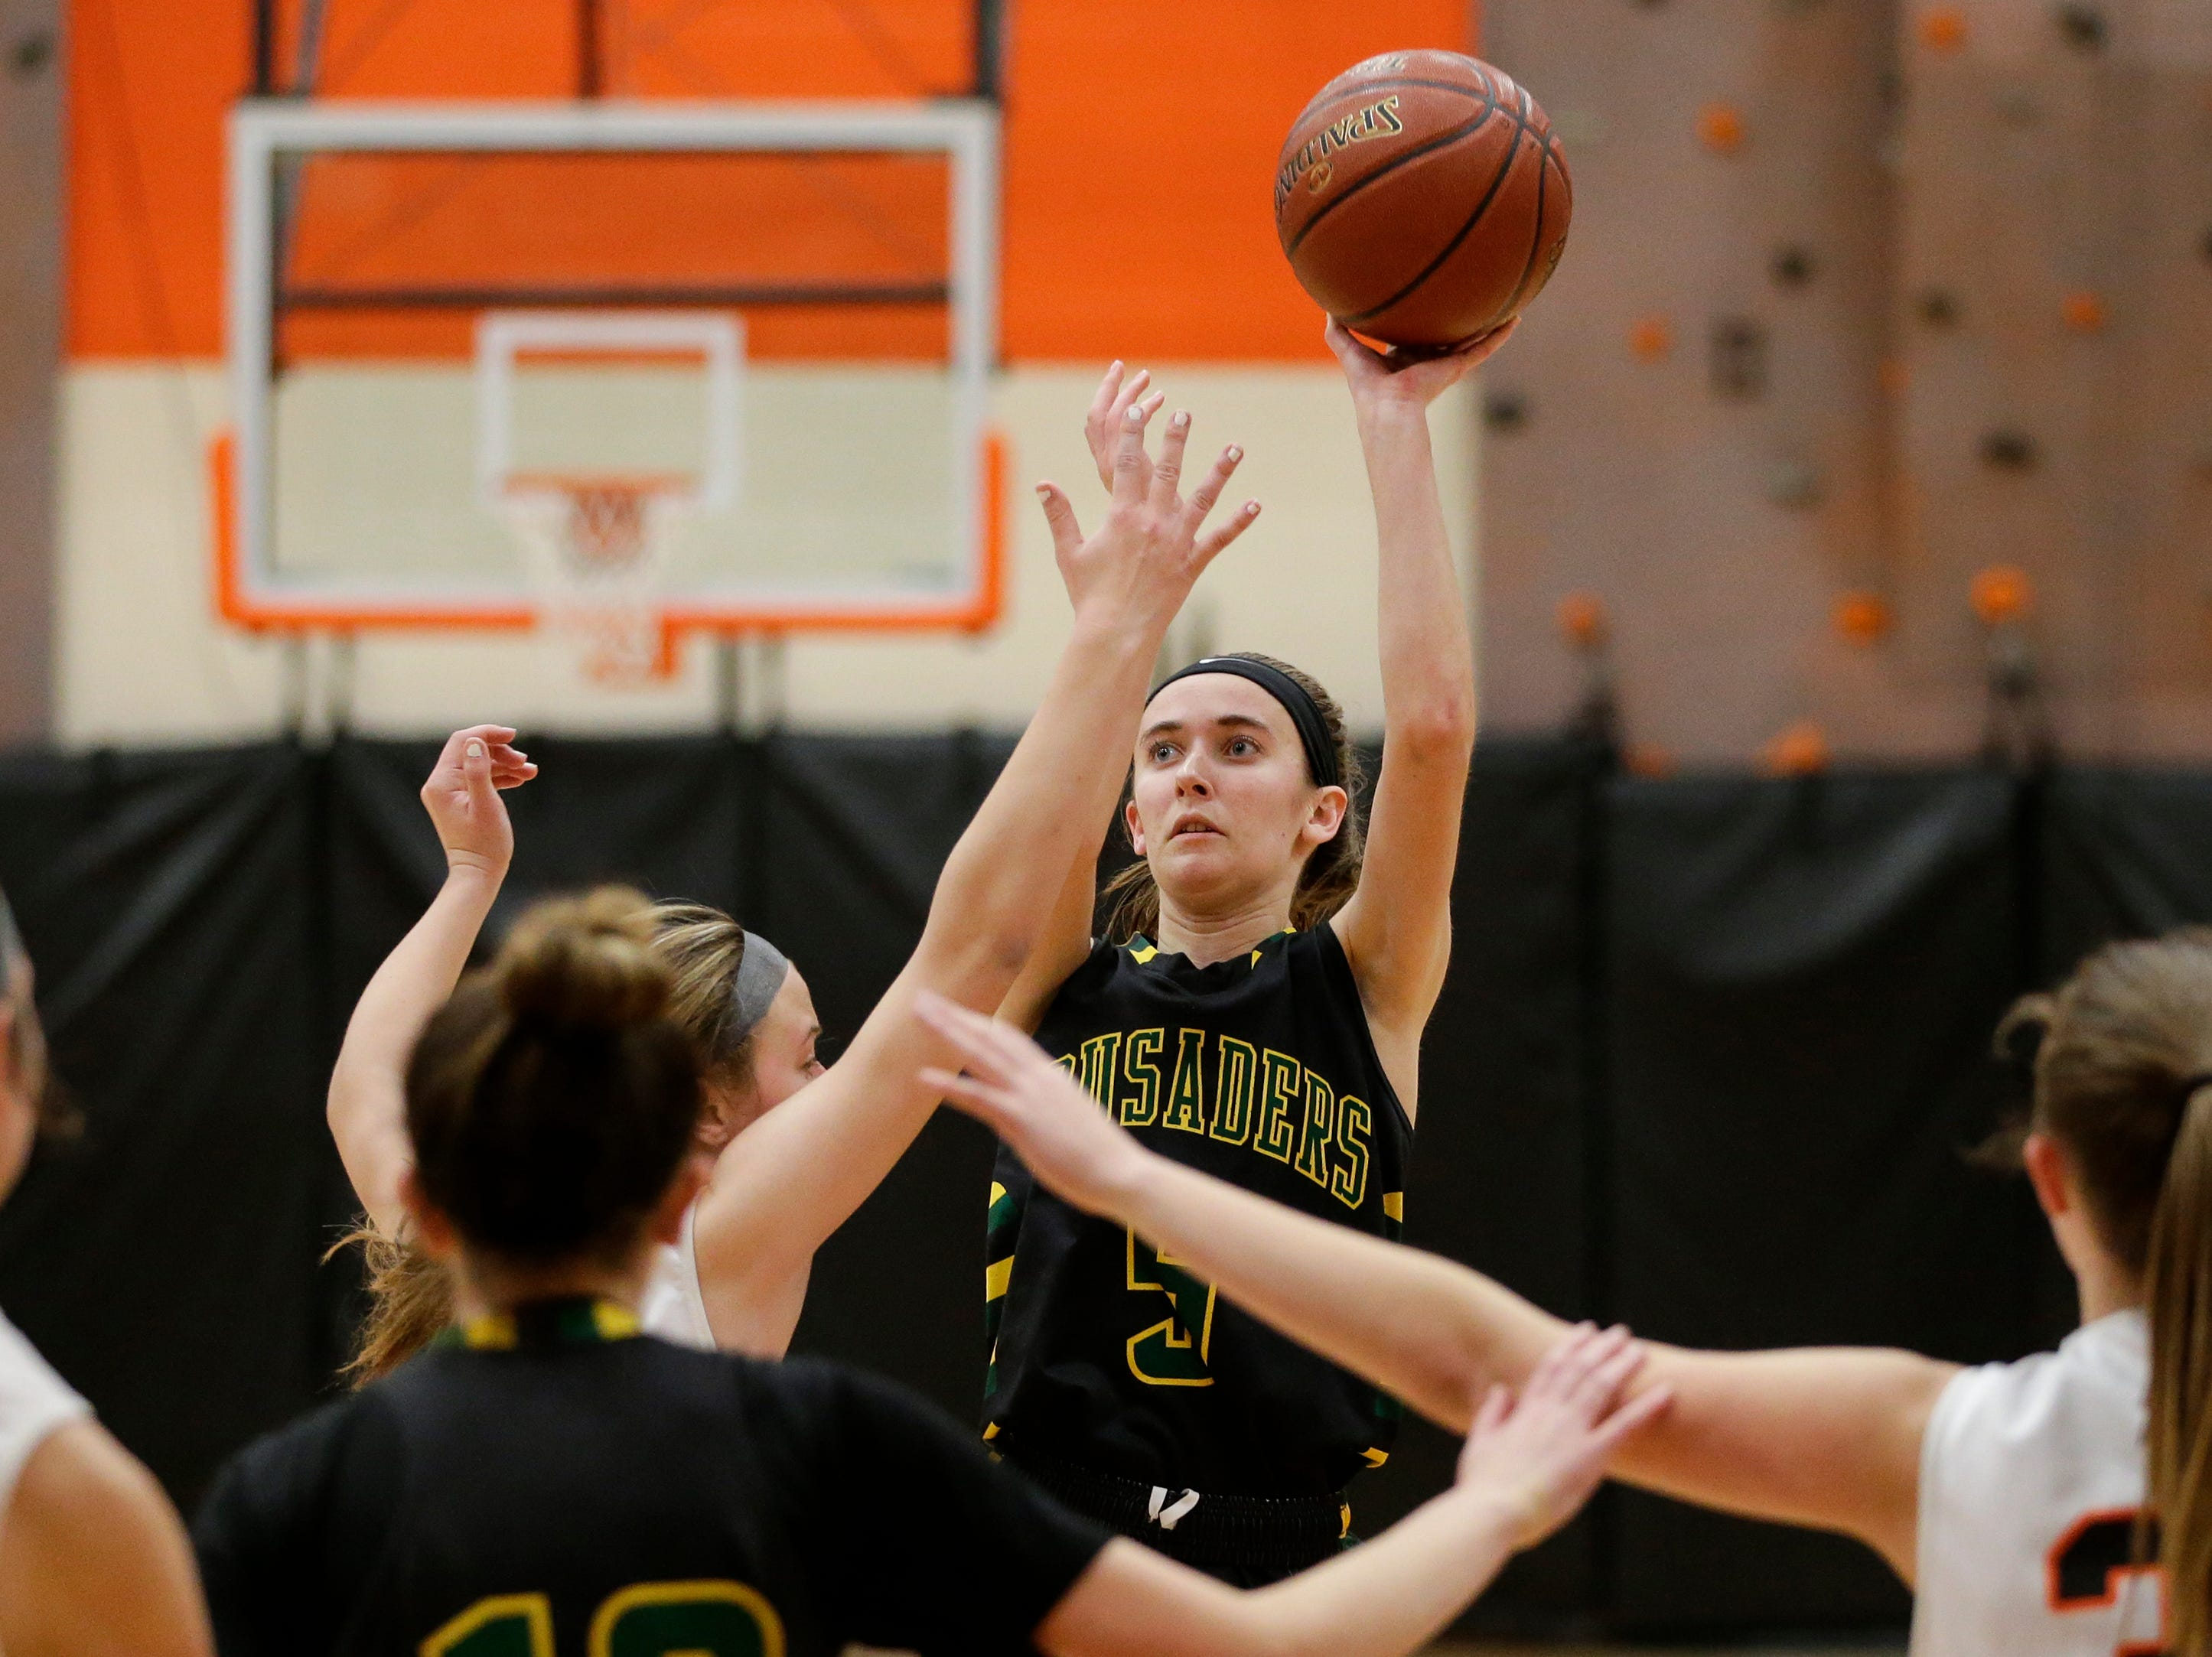 Sheboygan Area Lutheran's Katelyn Witte (5) shoots against Mishicot during a Big East Conference matchup at Mishicot High School Friday, January 11, 2019, in Mishicot, Wis. Joshua Clark/USA TODAY NETWORK-Wisconsin